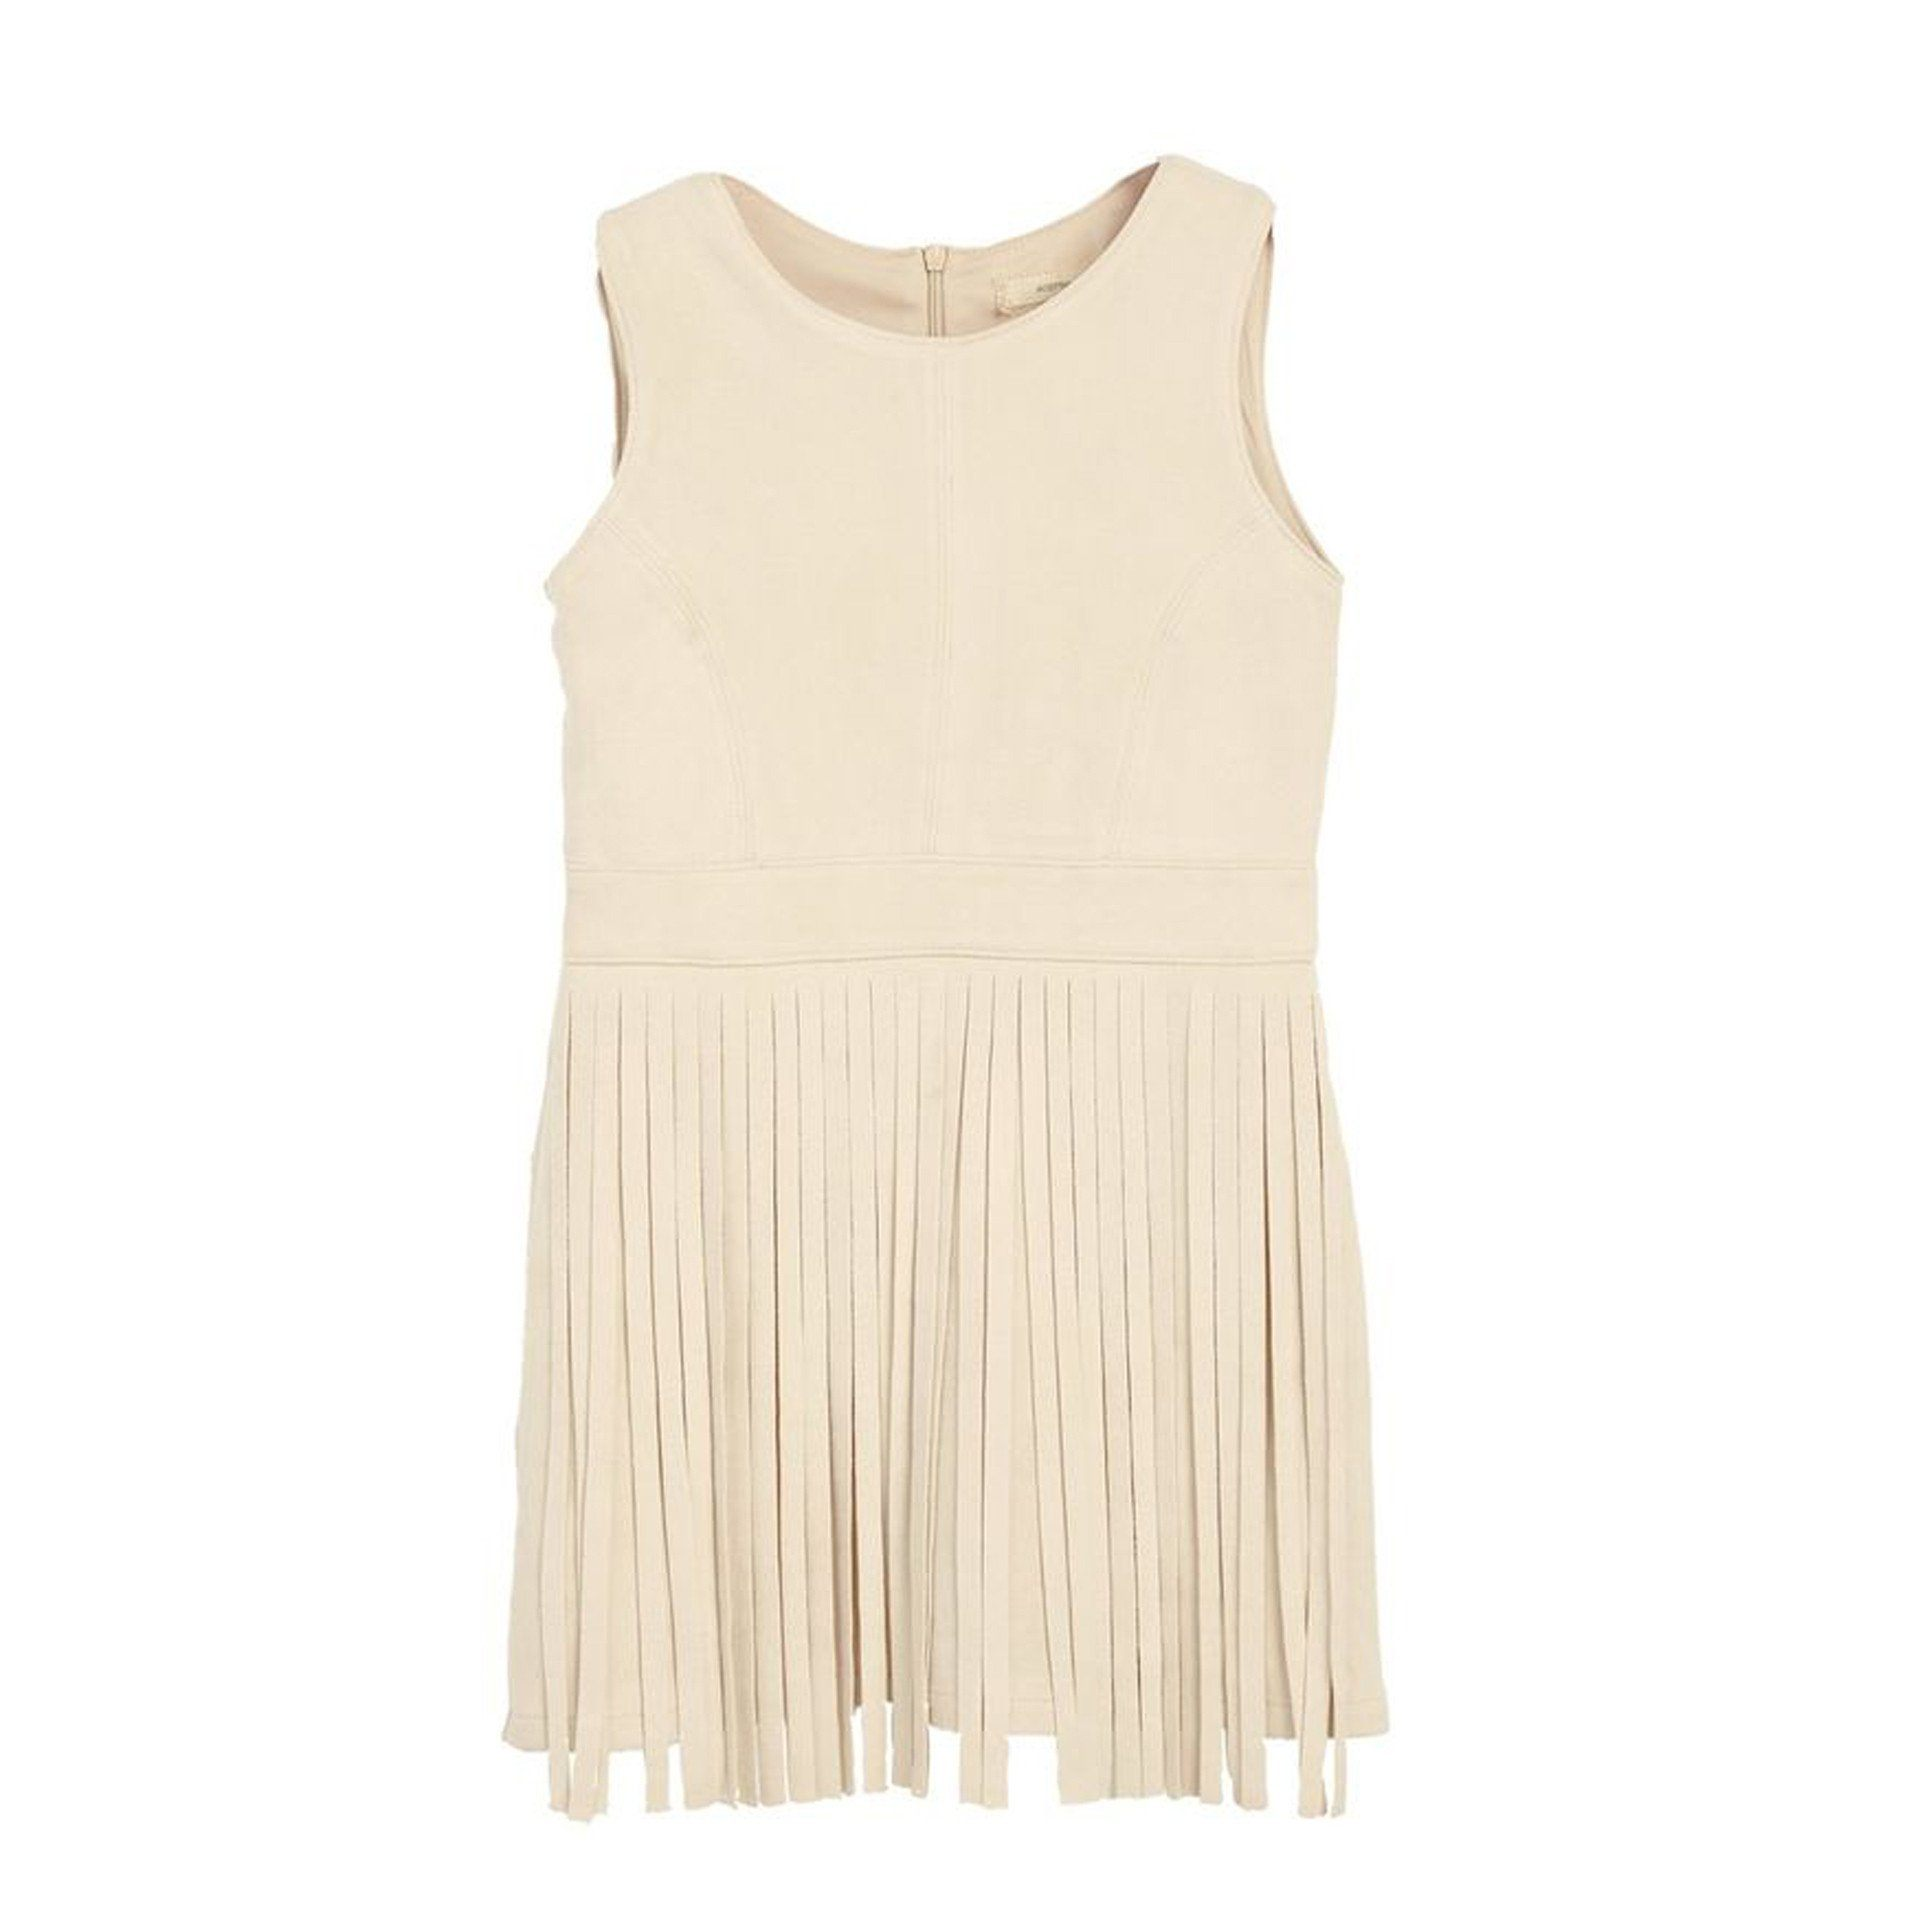 'Freebird' Suede Fringe Dress (Girls Sz 7-16) - Arlo and Arrows